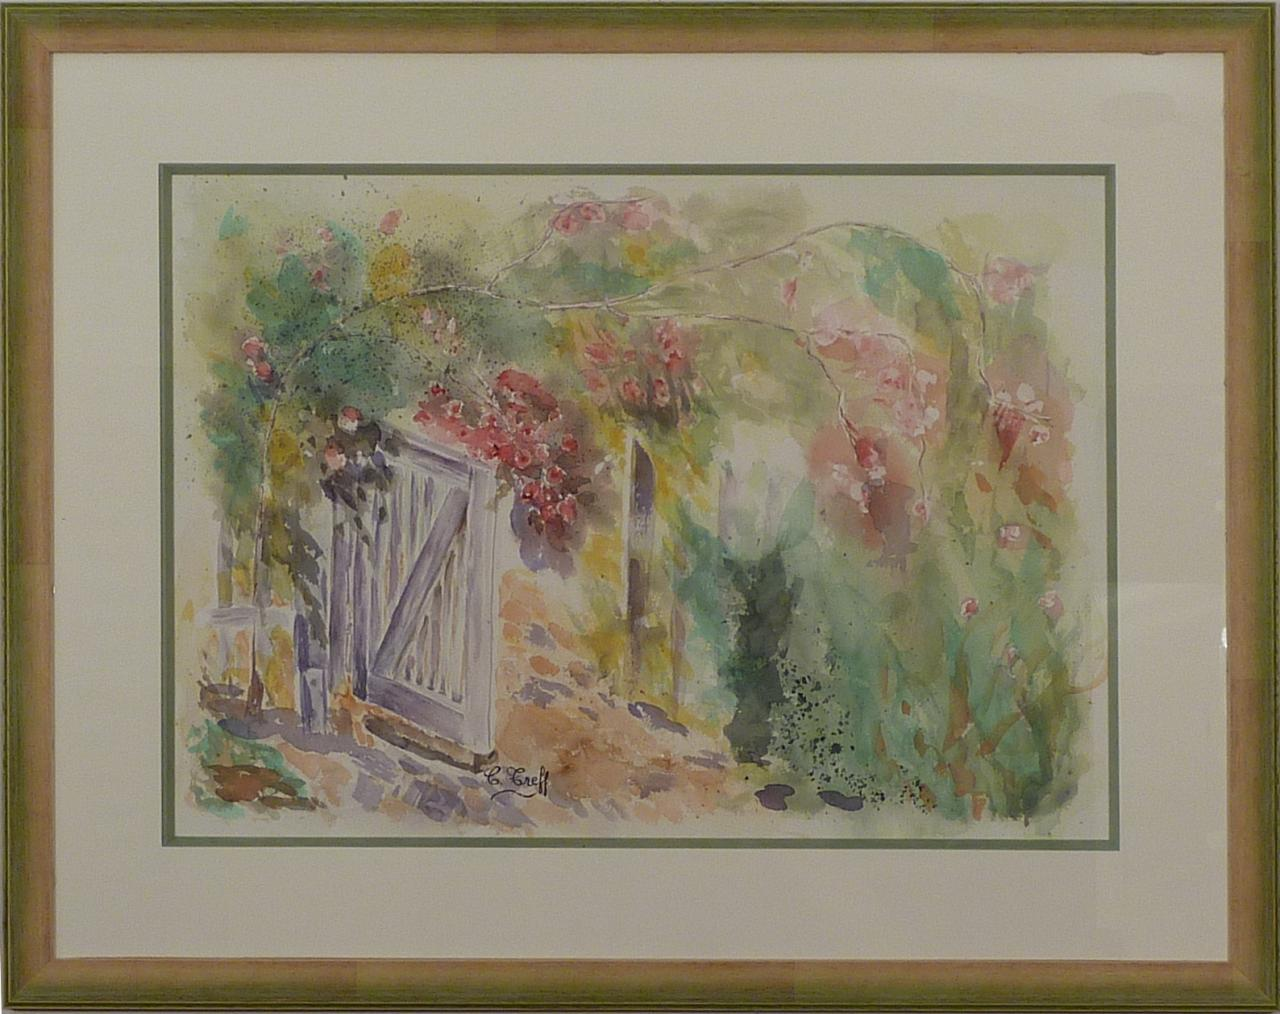 82-Jardin secret-(71x55)